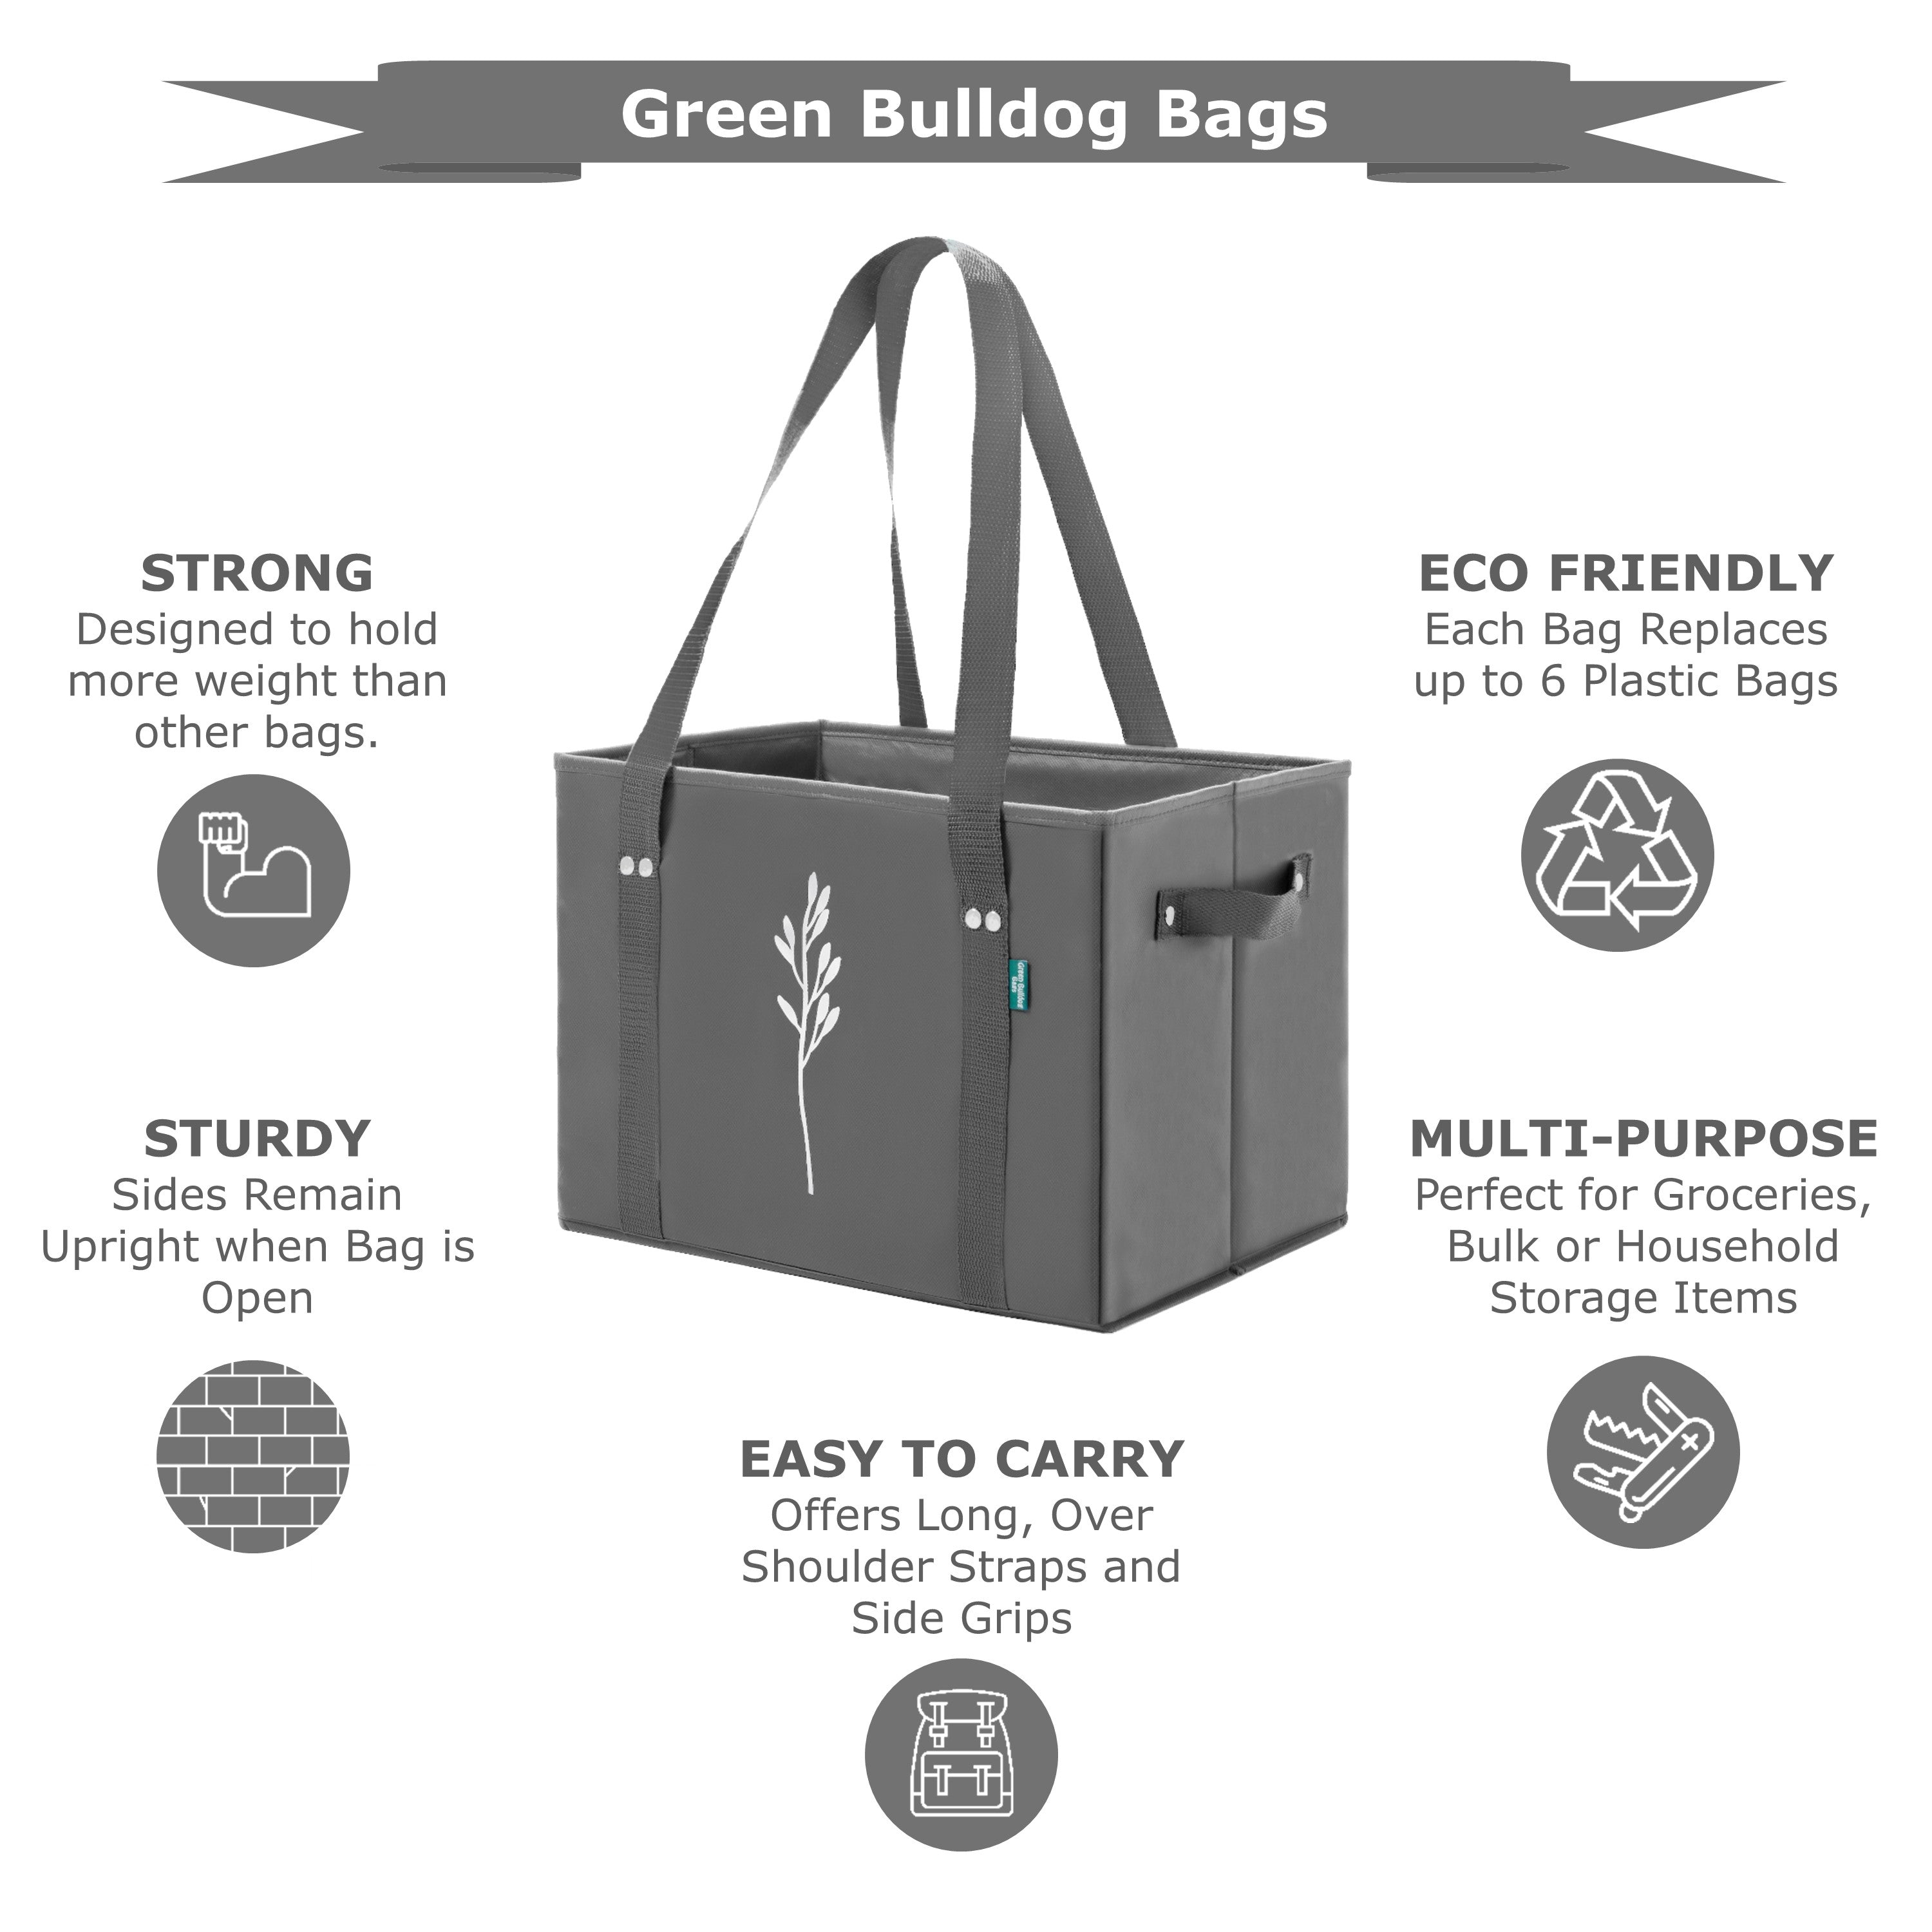 Green Bulldog Bags are the Best Reusable Bags on the Market